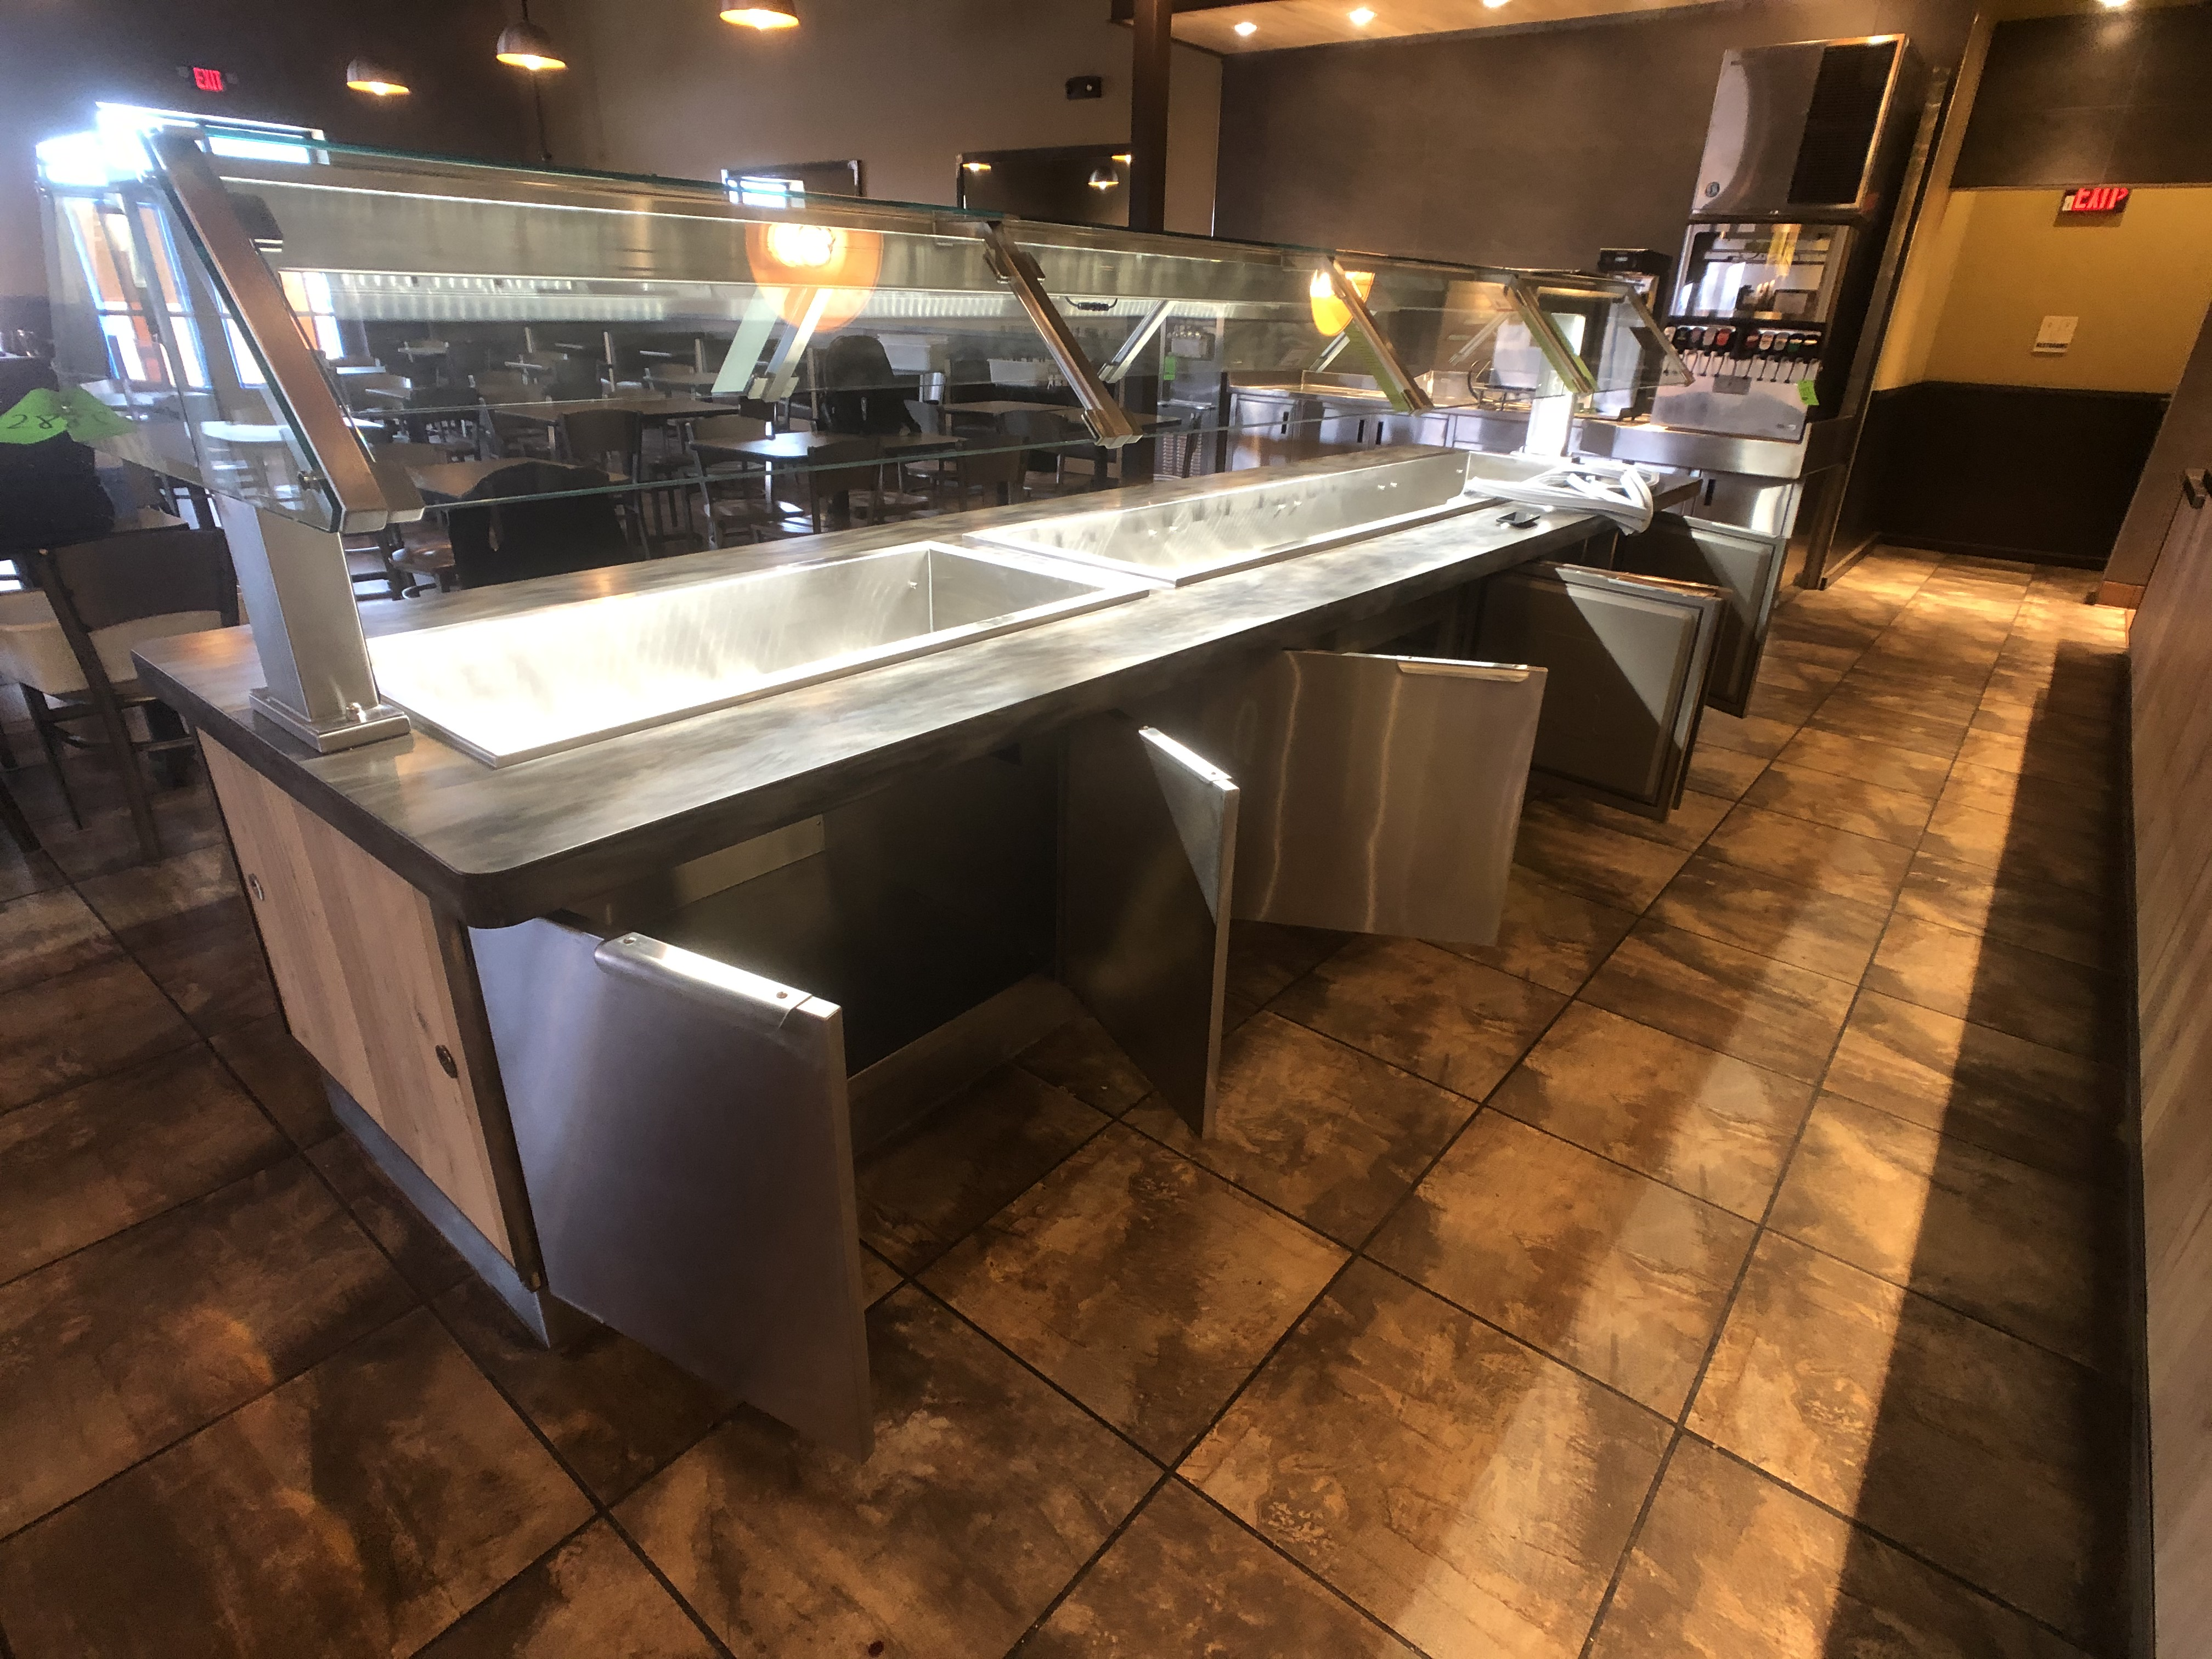 Randell Approx. 15' L x 4' W Refrigerated Buffet Table with Overhead Light, Work-Top Refrigerator - Image 2 of 6